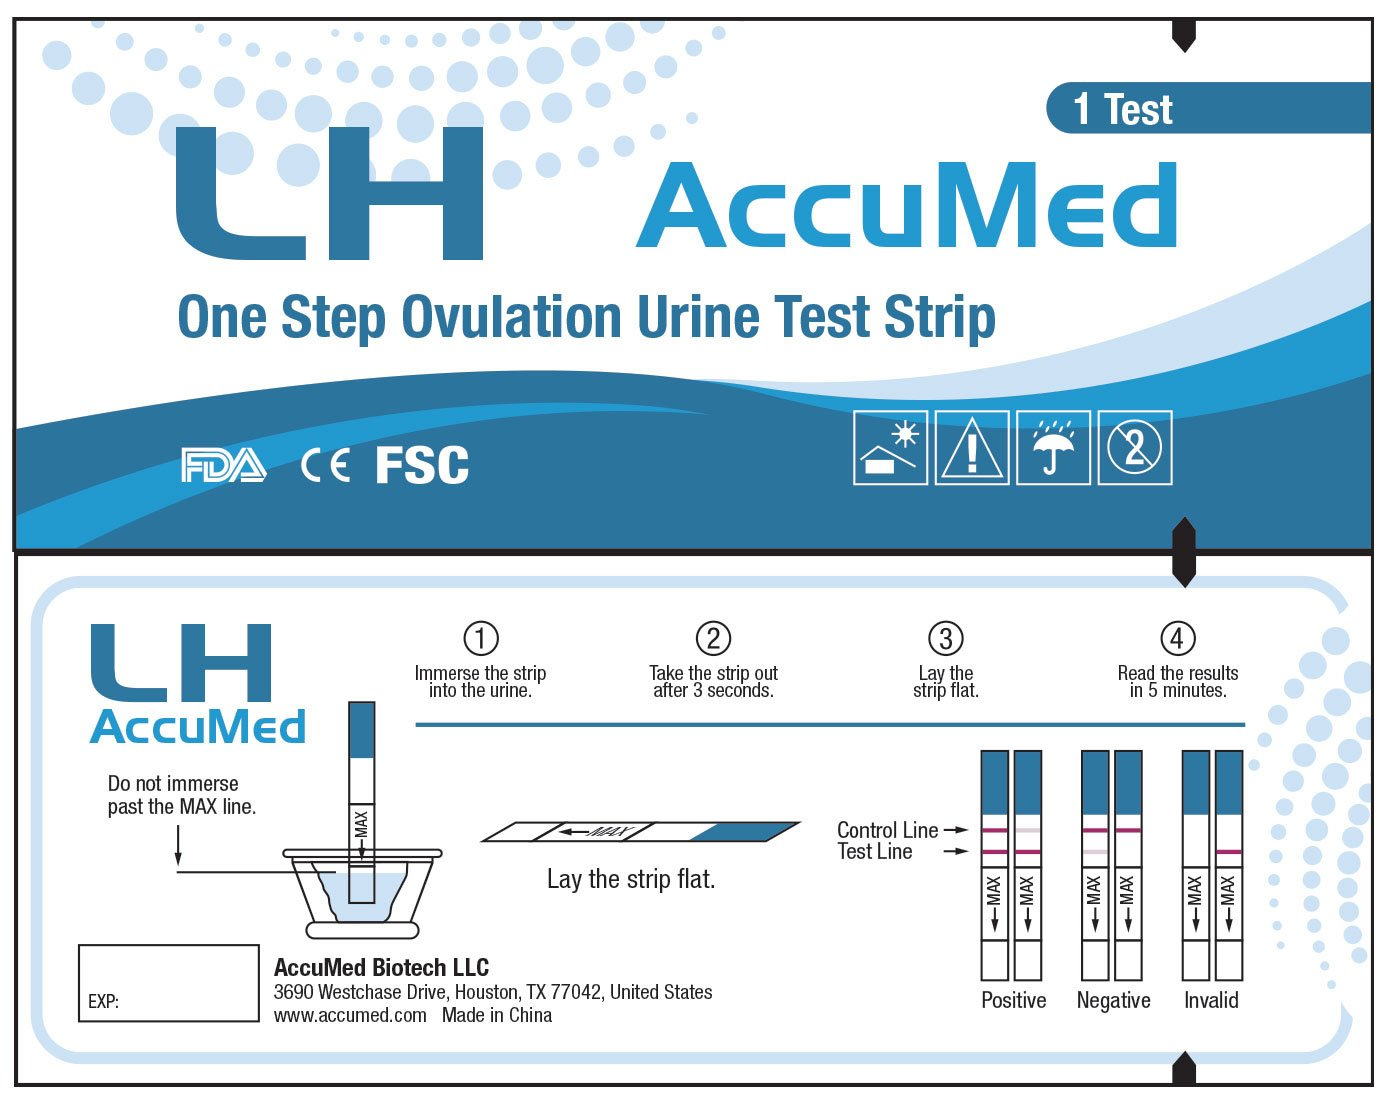 AccuMed® Ovulation (LH) Test Strips Kit, Clear and Accurate Results, FDA Approved and Over 99% Accurate, 100 count